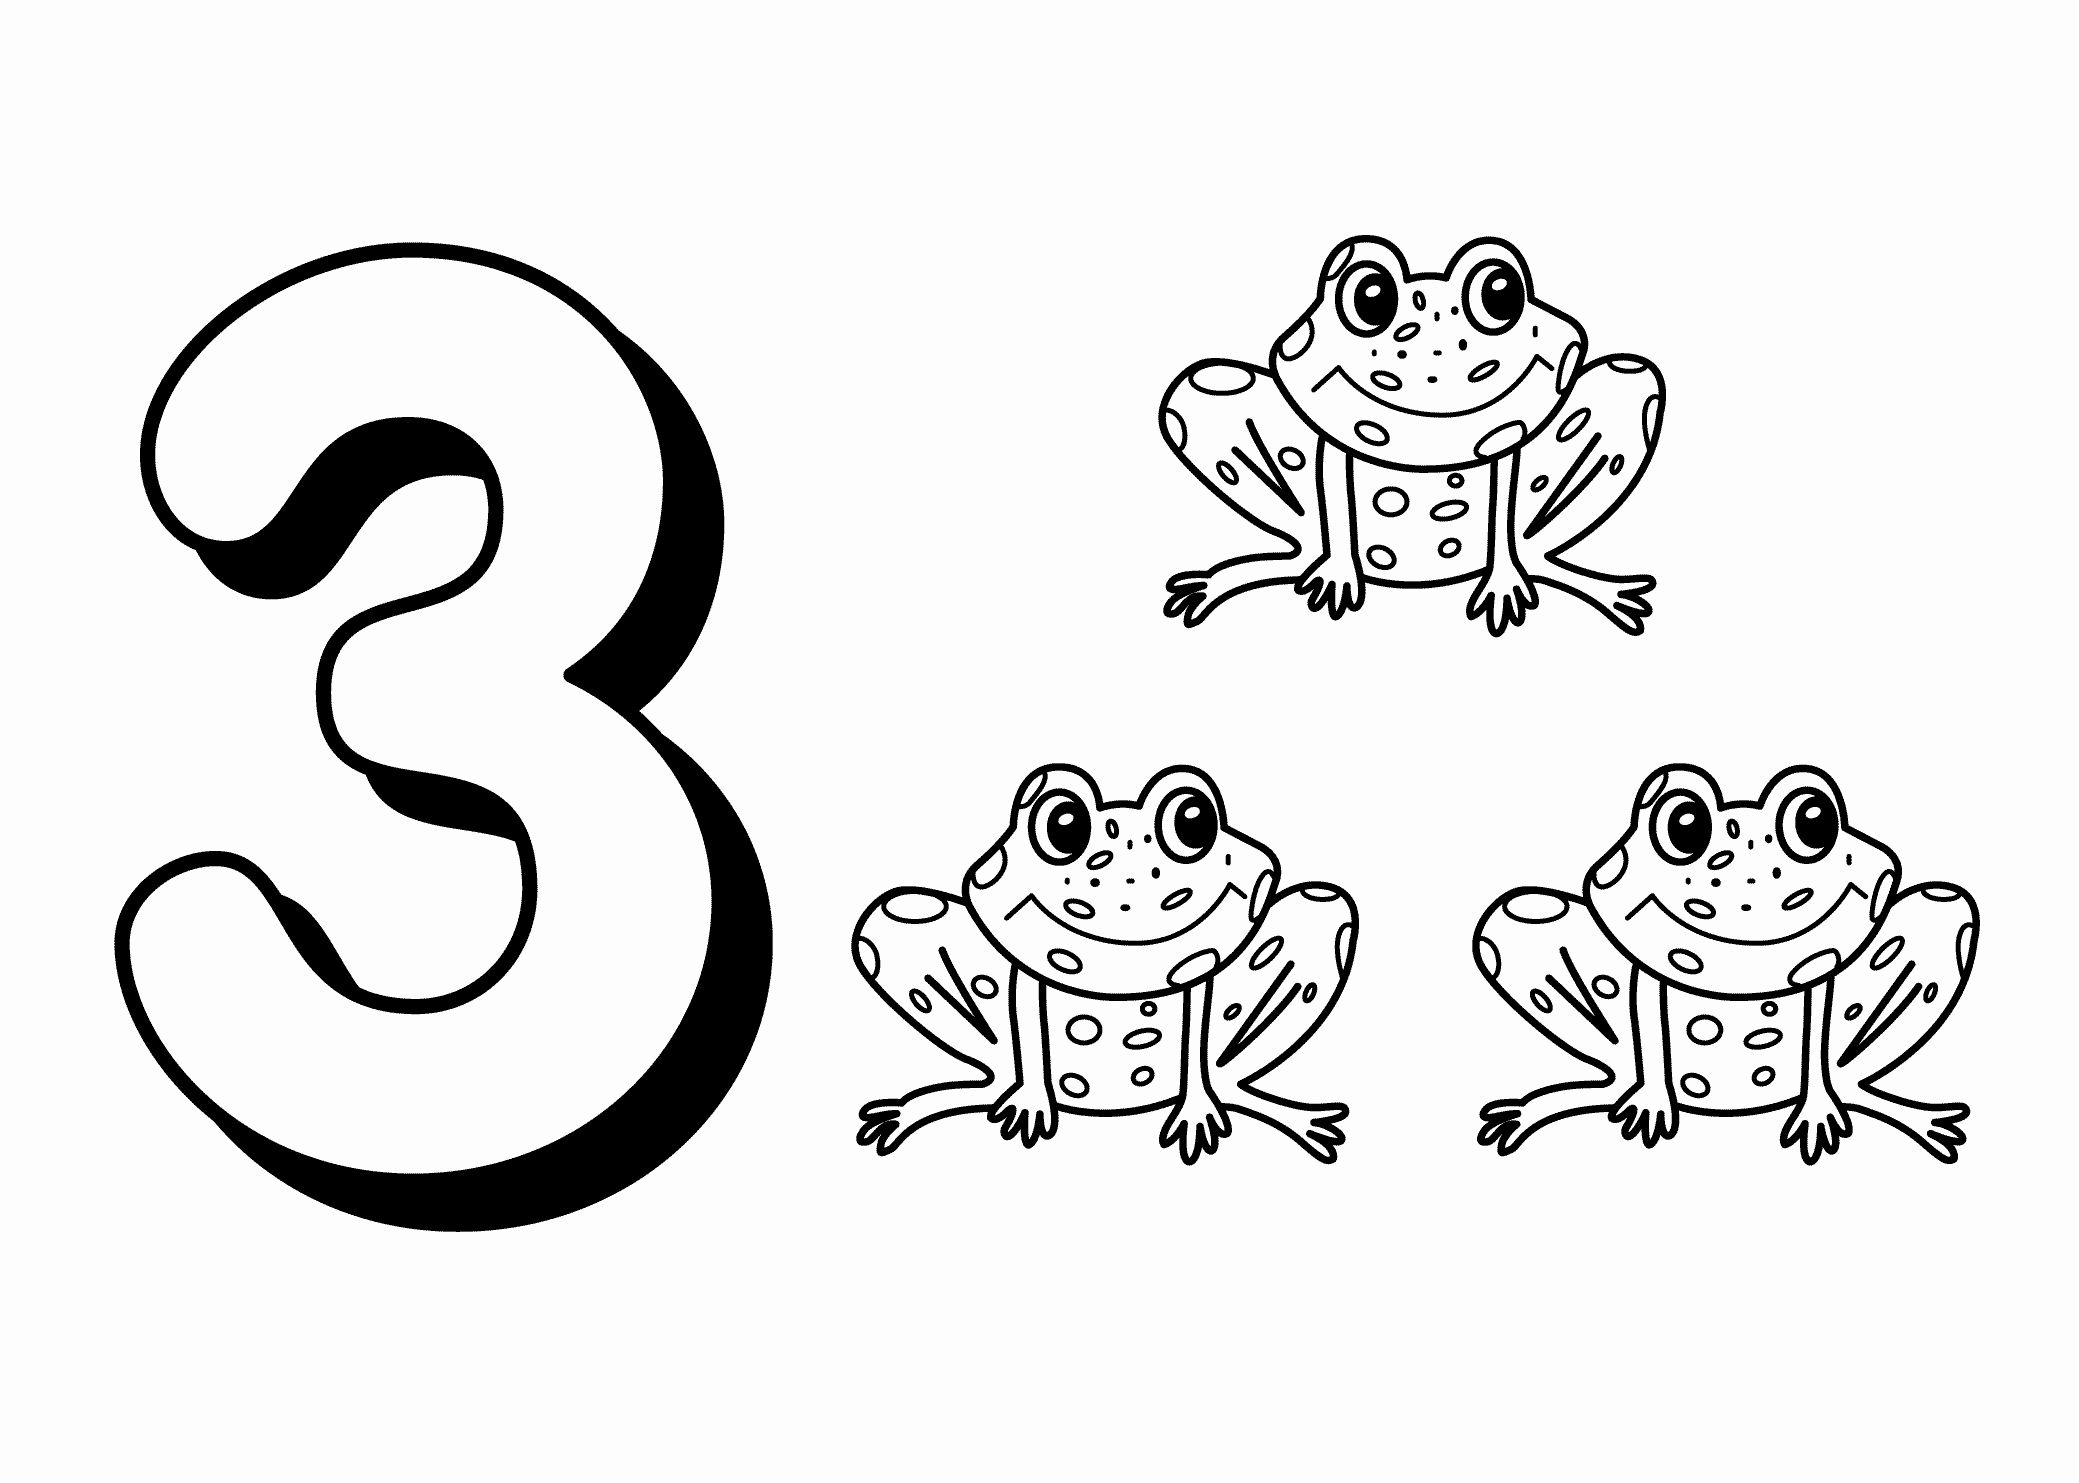 Numberjacks Coloring Pages Inspirational Numberjacks 3 Colouring Pages Sketch Coloring Page In 2020 Coloring Pages Kids Printable Coloring Pages Frog Coloring Pages